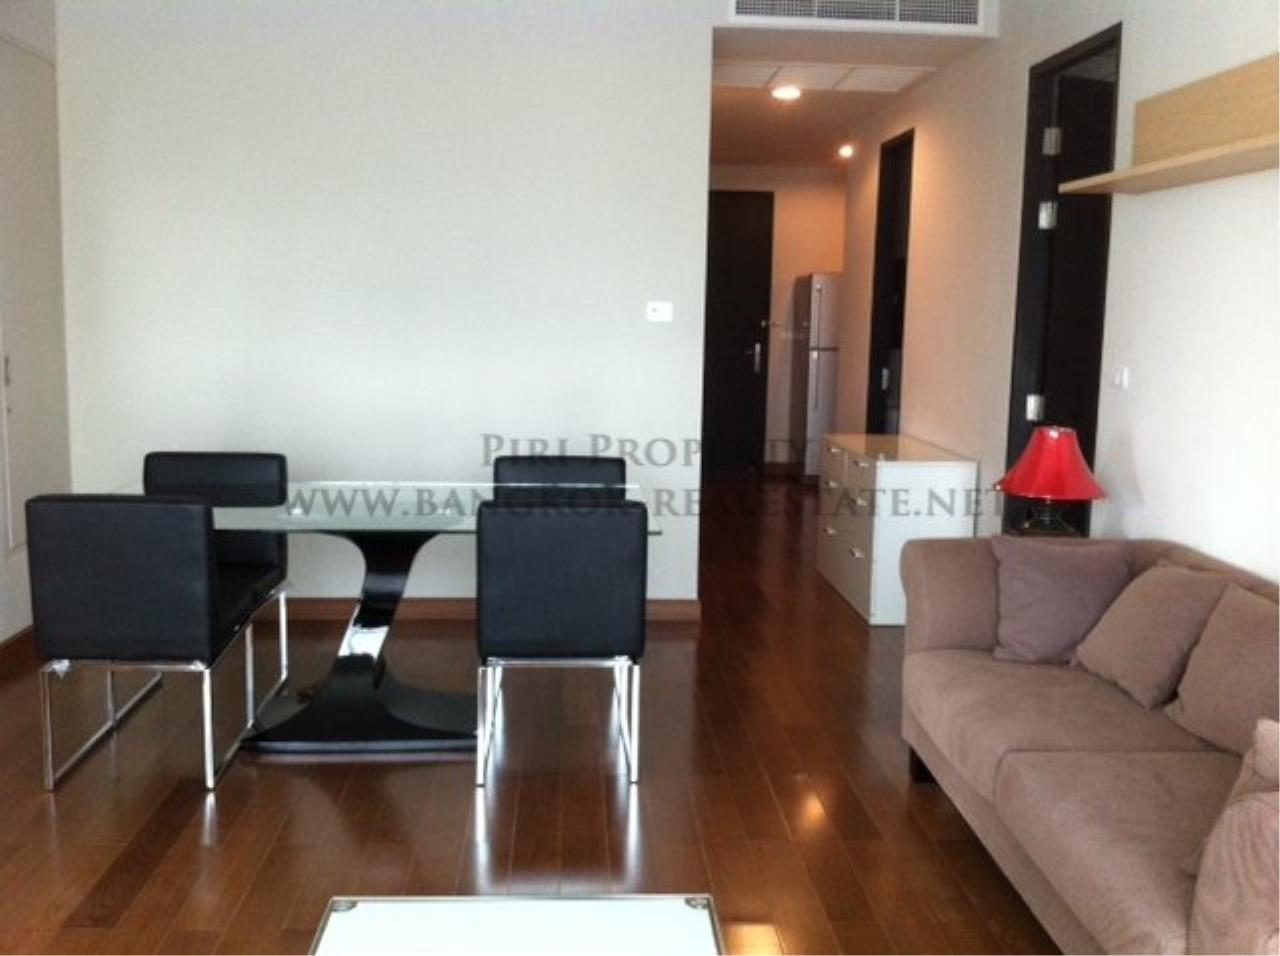 Piri Property Agency's Biggest available 2 Bedroom in The Address Chidlom - Fully furnished 2